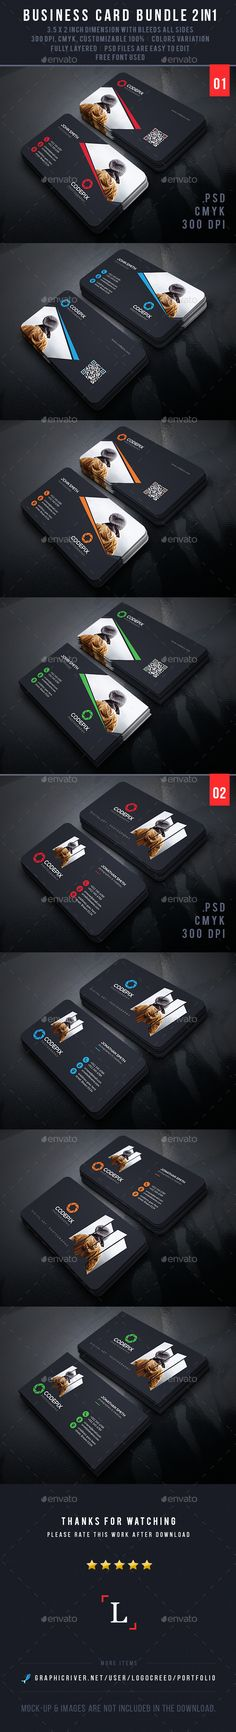 Photography Business Card Bundle Template PSD #design Download: http://graphicriver.net/item/photography-business-card-bundle/13961627?ref=ksioks